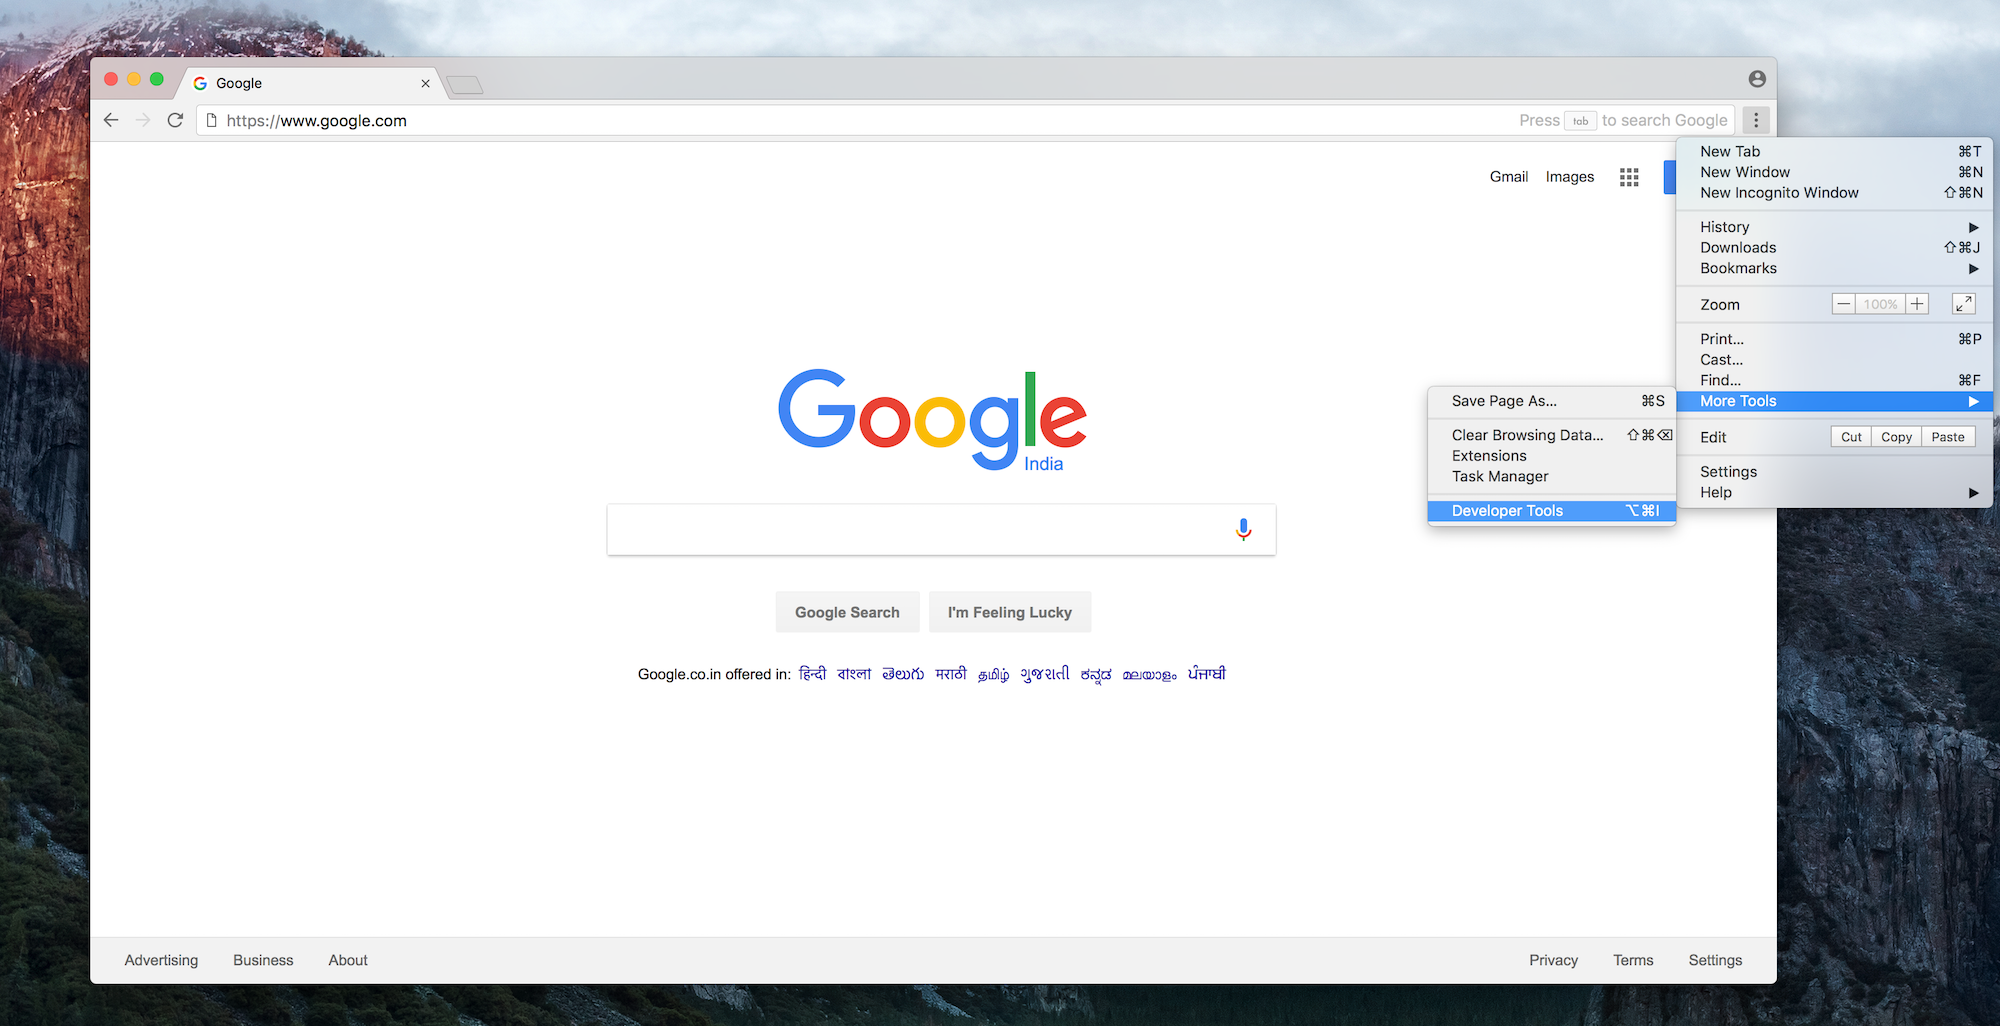 How to change User Agent in chrome browser - Posts - ReviewDB